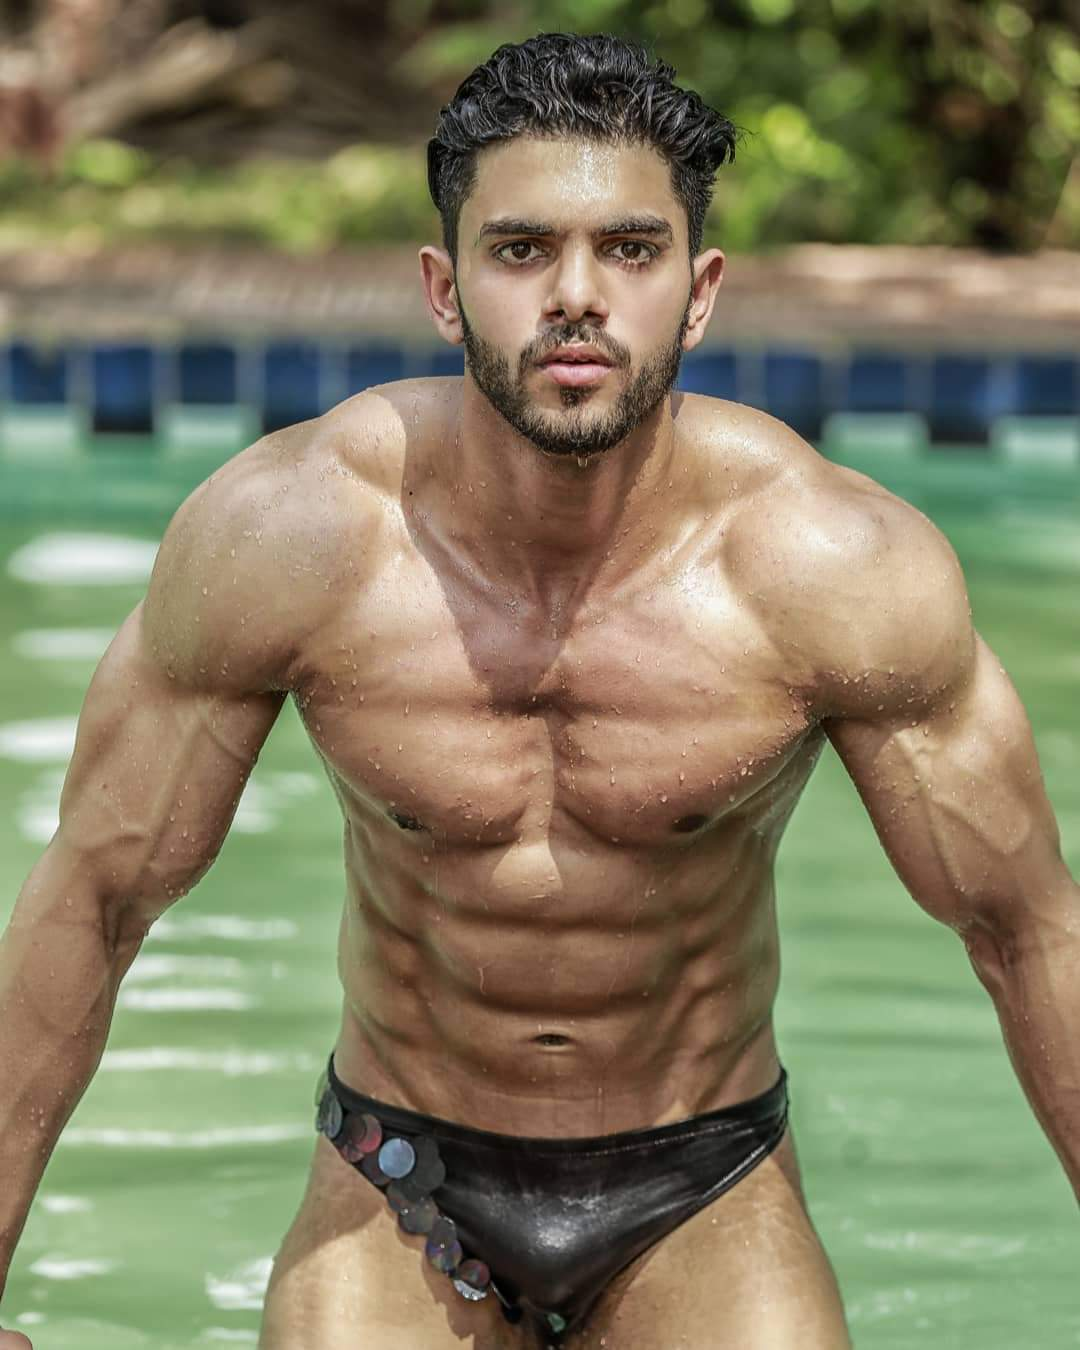 At the Mr India pageant, Pankaj got noticed for his very magnificent facial features, charming looks and Greek-God like physique. His conventional Indian looks and very naive yet chivalrous personality made him stand out from the rest.